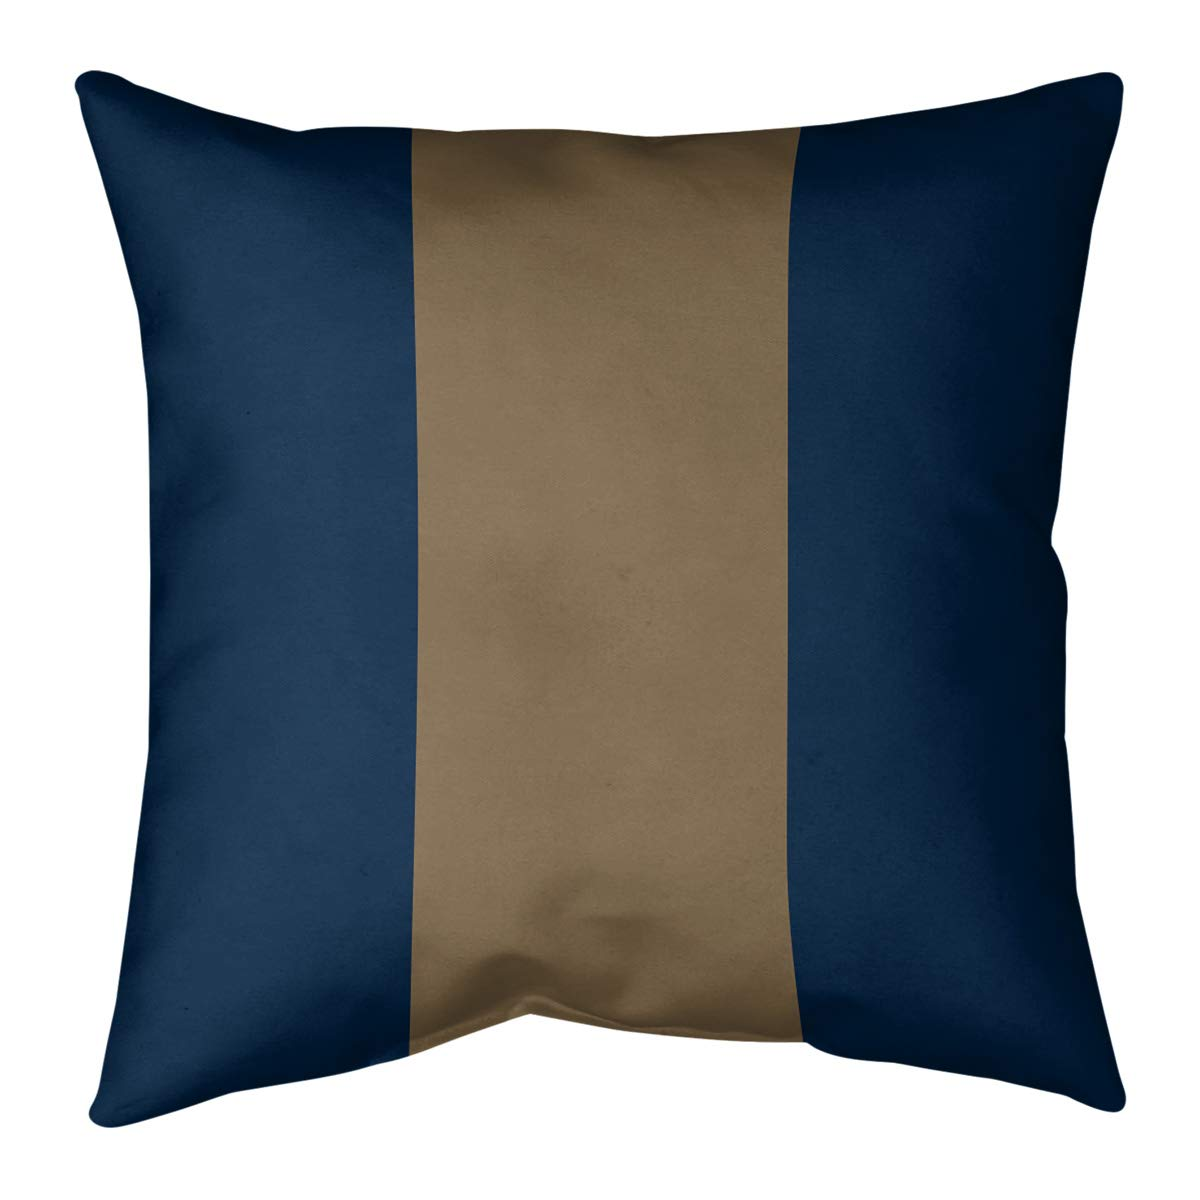 Buy Artverse Los Angeles Nfs La Horns Football Stripes Pillow Cover No Fill Poly Twill 16 X 16 Blue And Gold Online At Low Prices In India Amazon In